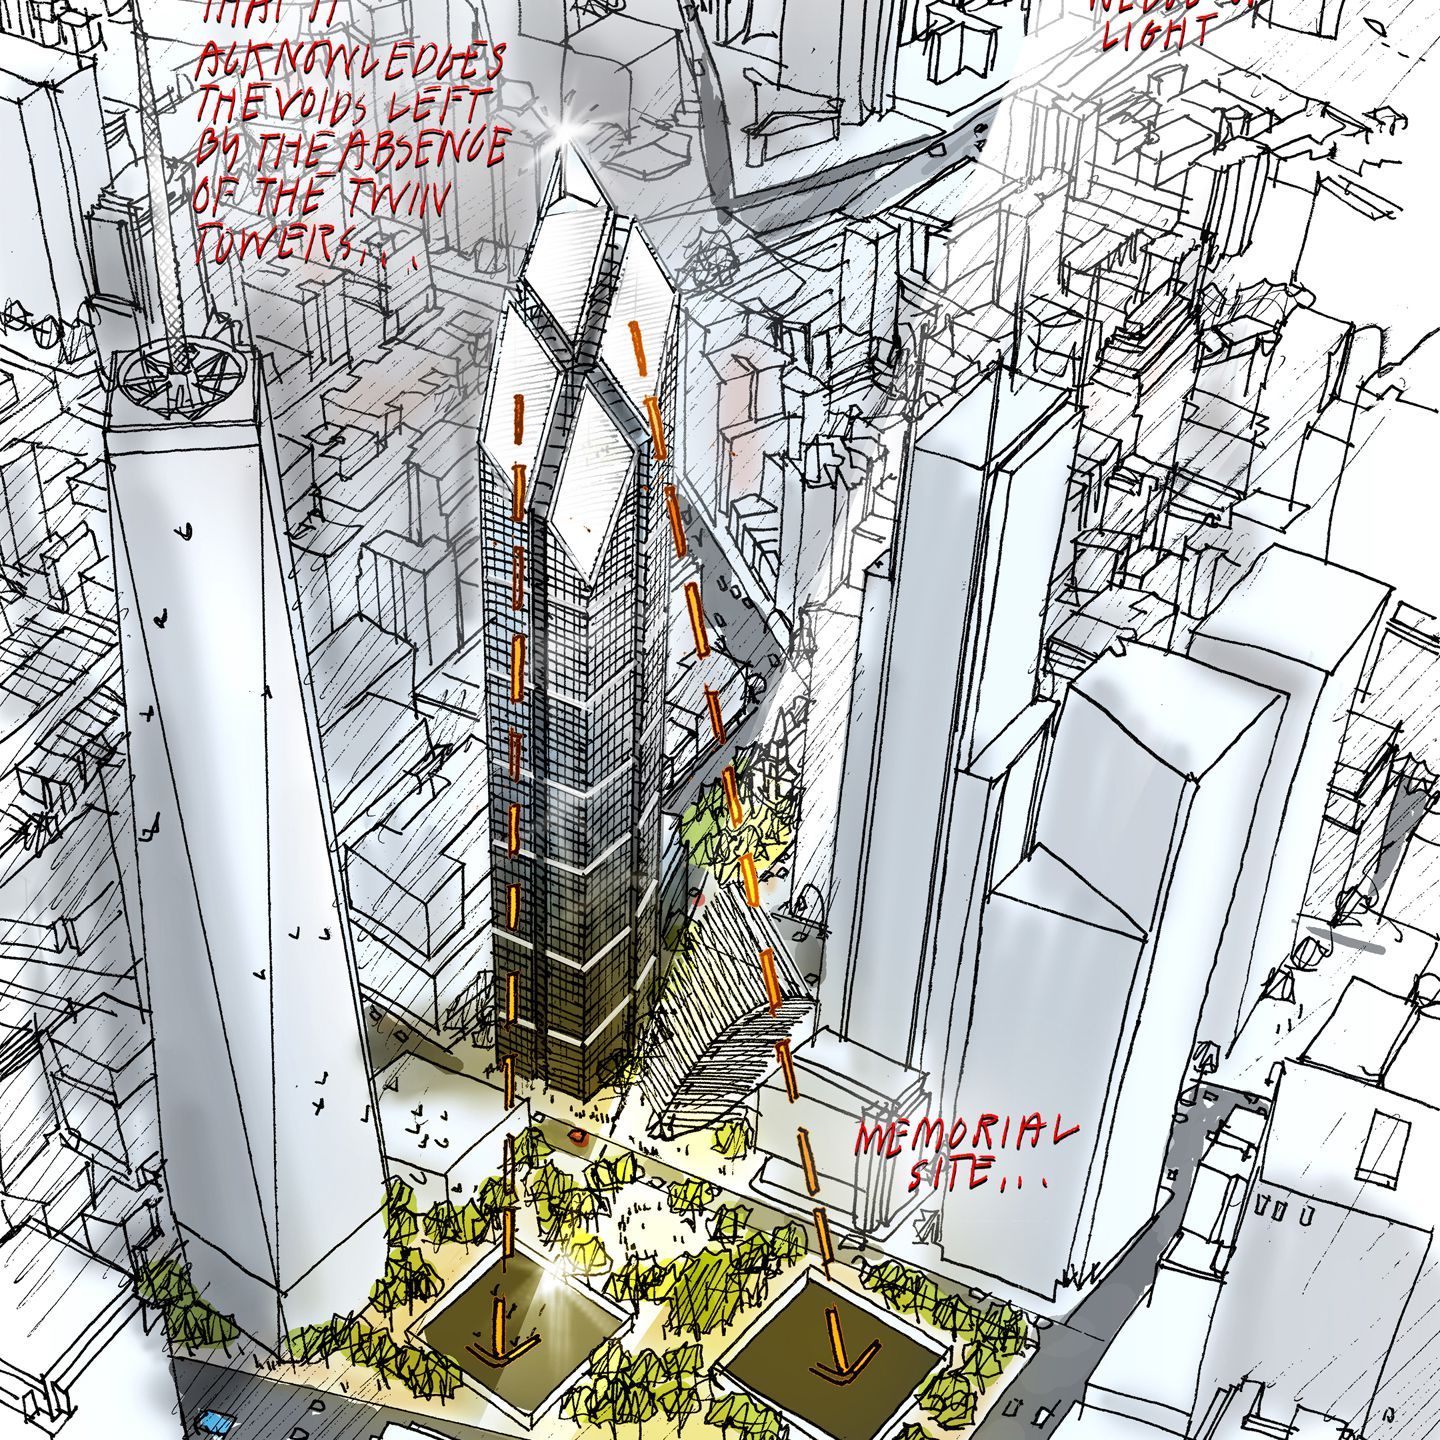 Architect's Sketch -- top of tower is oriented so that it acknowledges the voids left by the absence of the twin towers